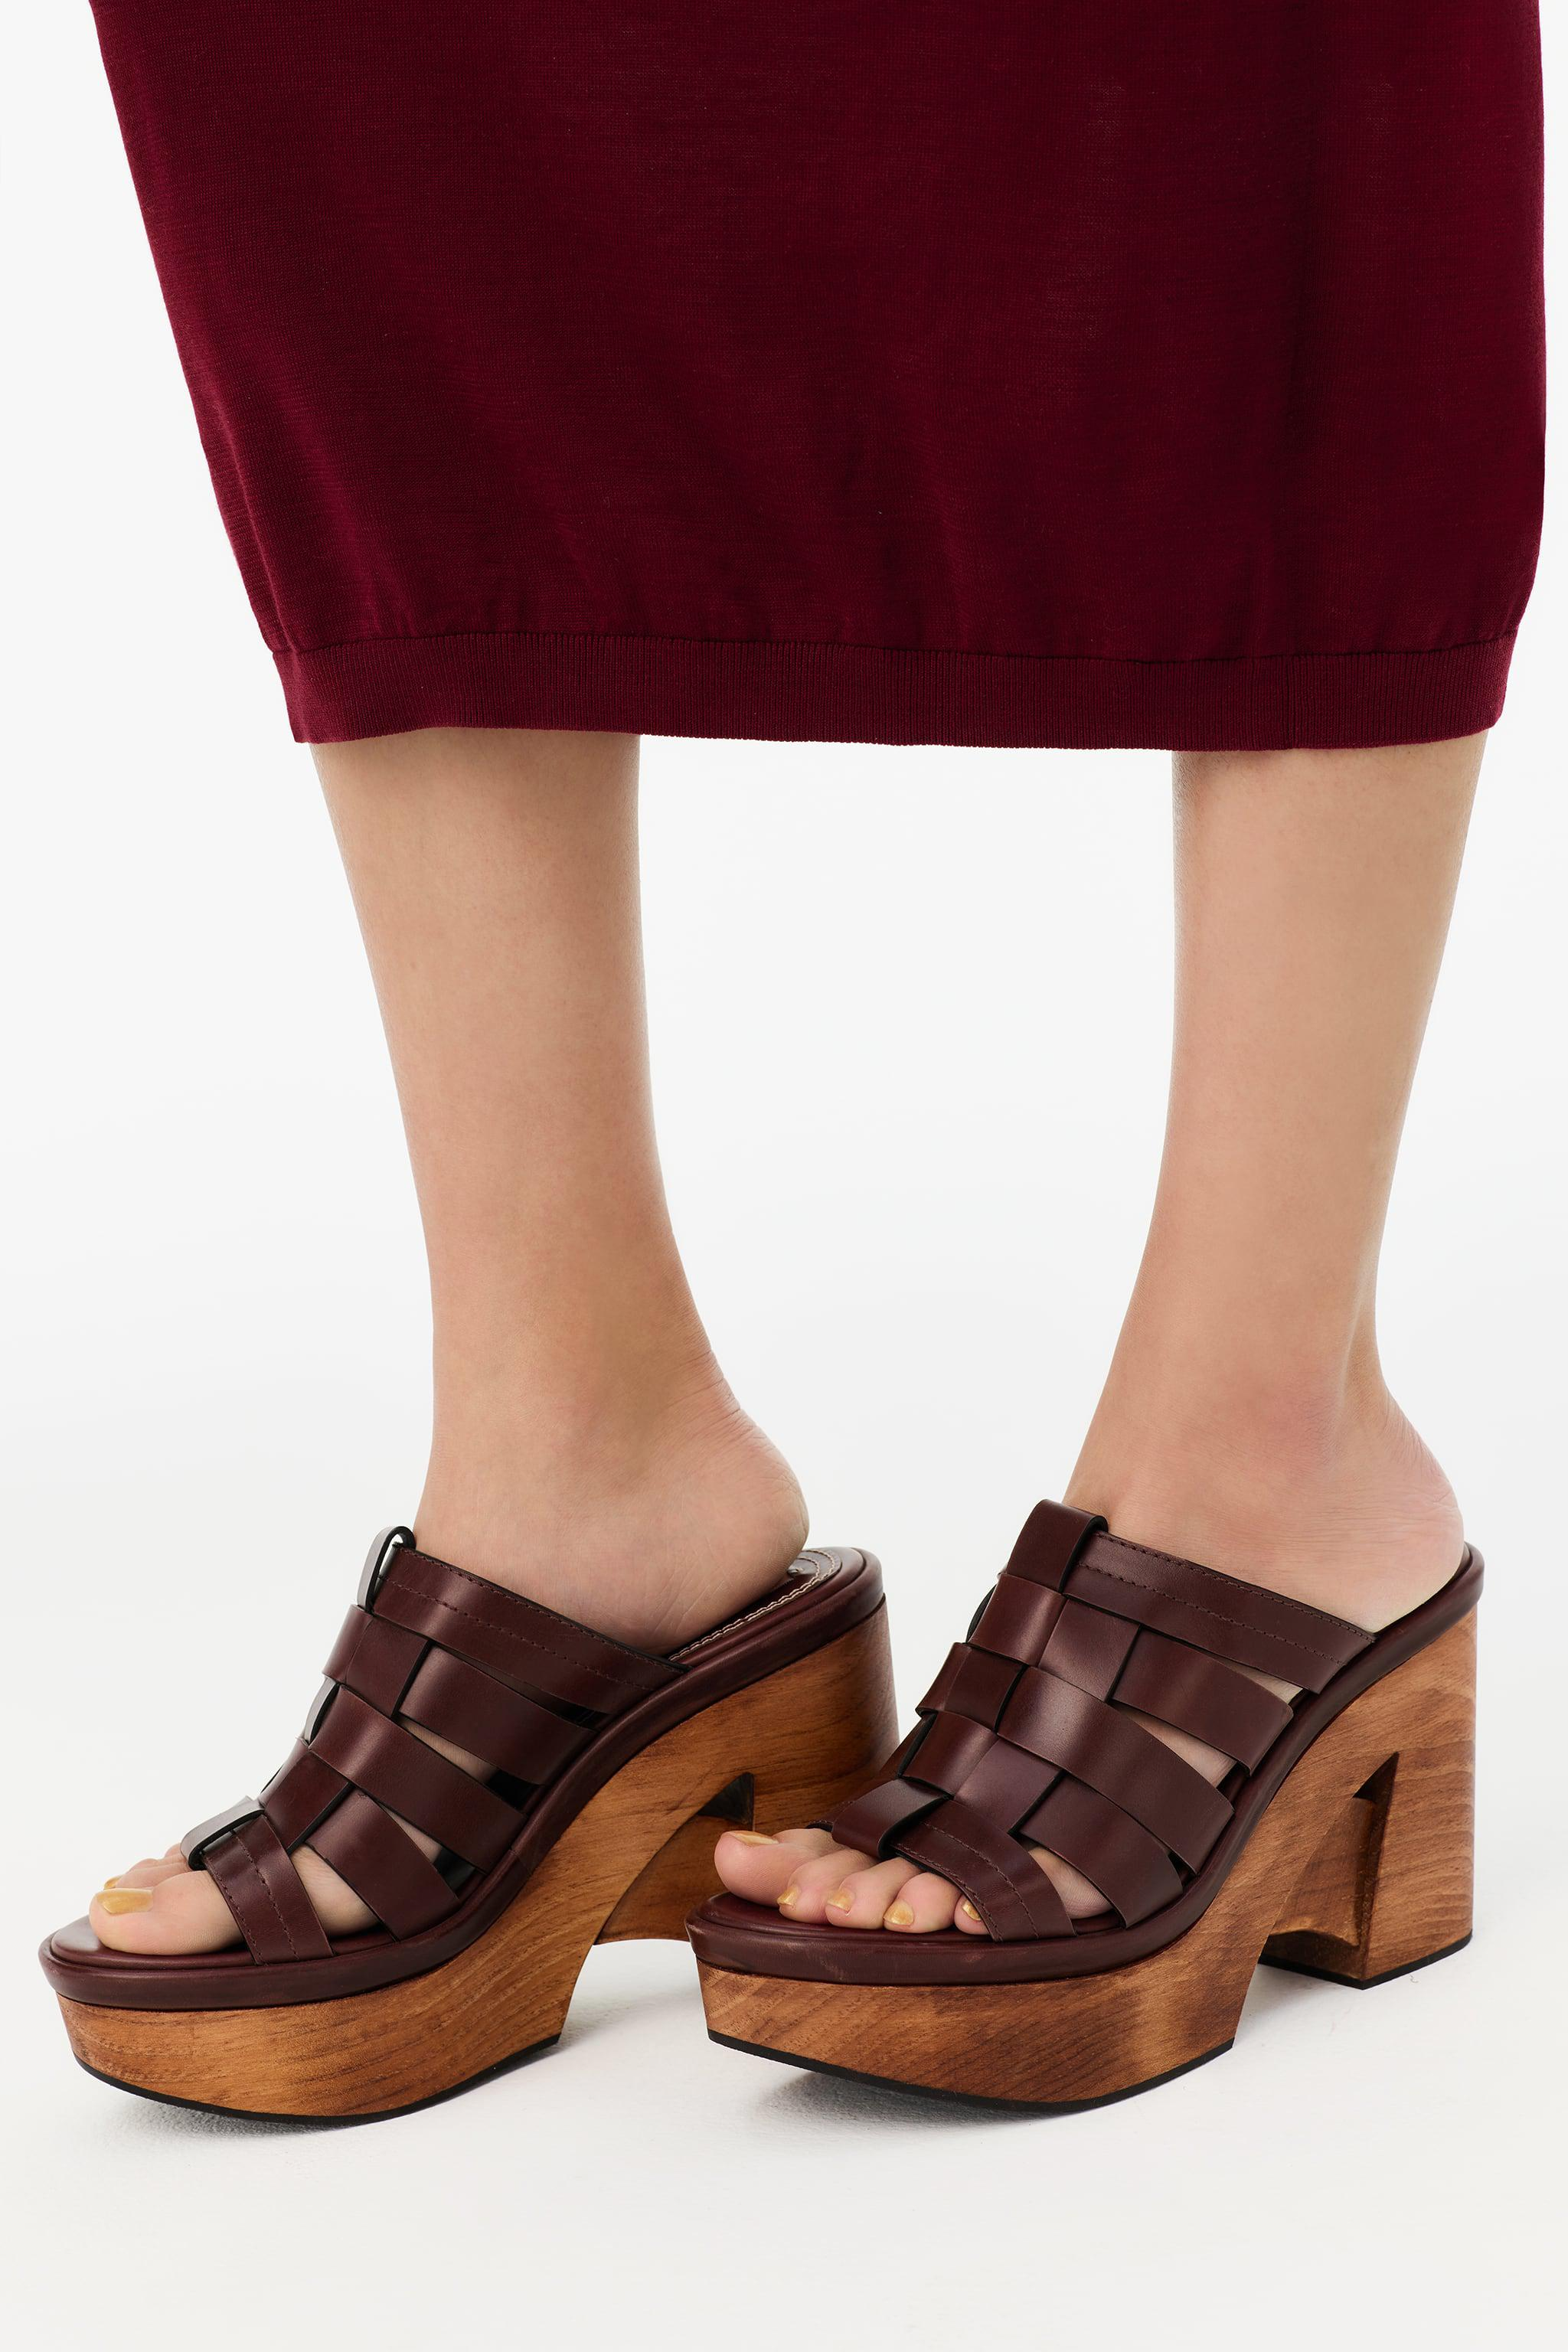 WOOD LEATHER FISHERMAN CLOGS